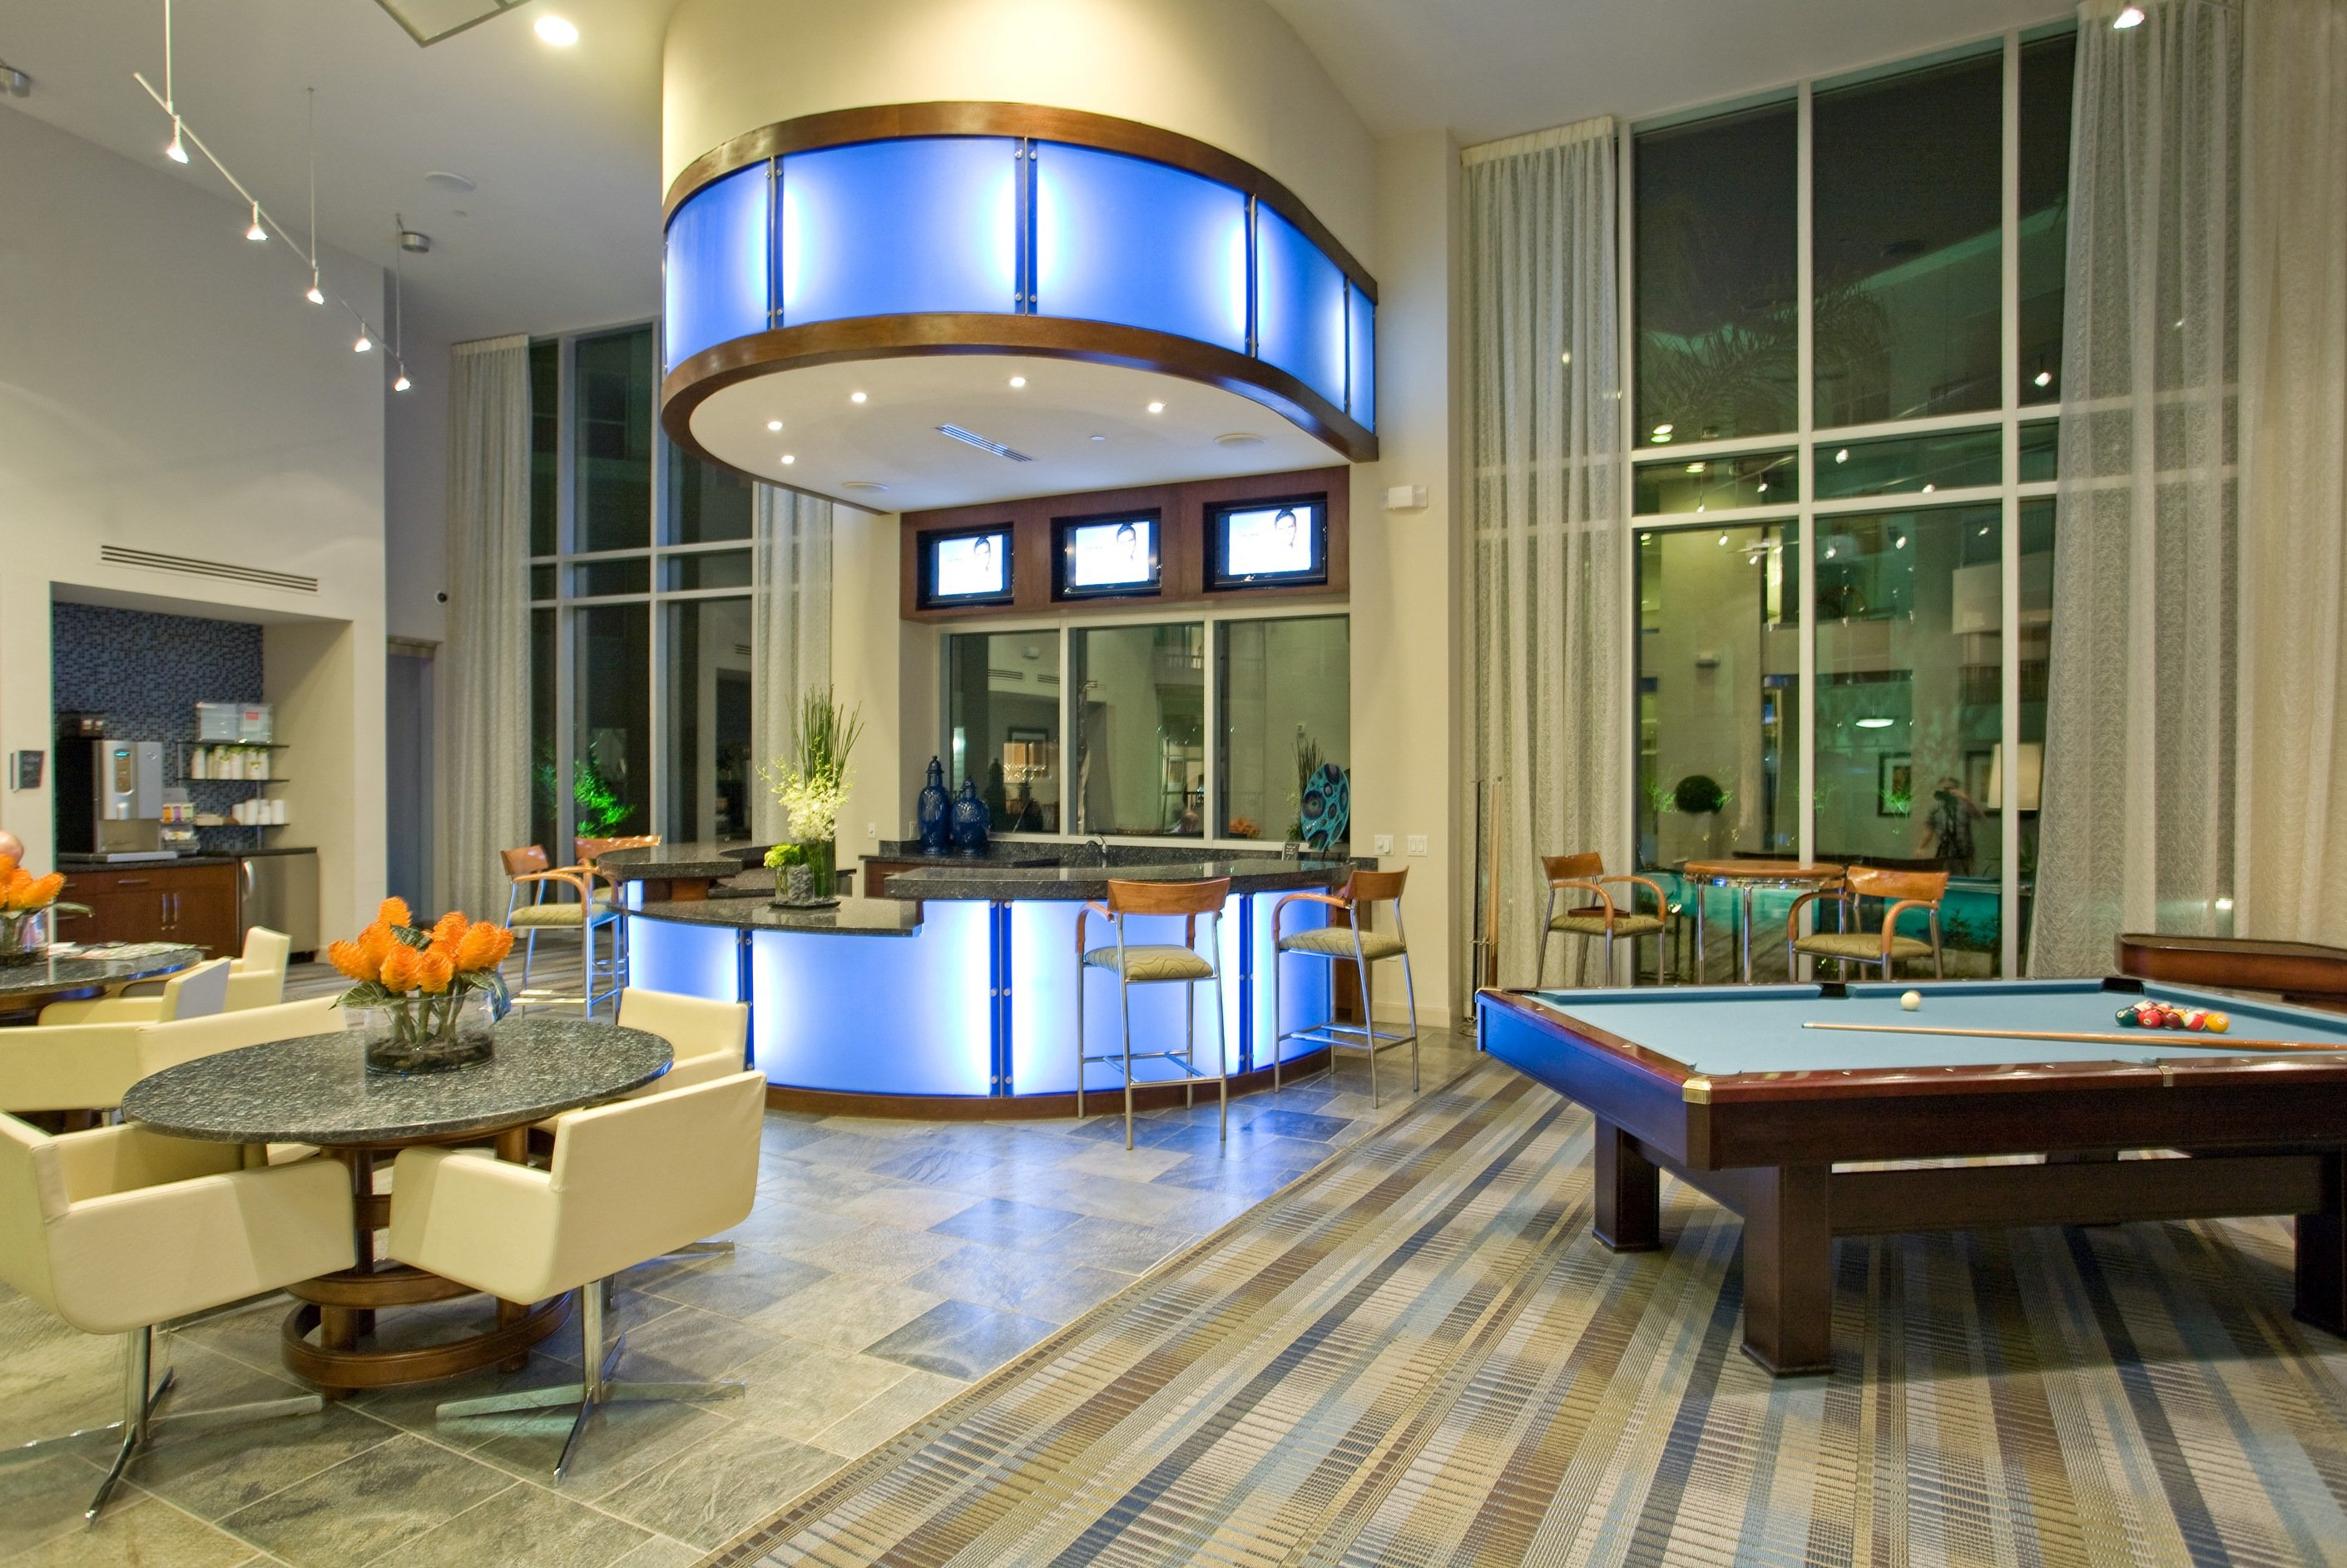 Pool Table at Domain at CityCentre Apartments in Houston, Texas